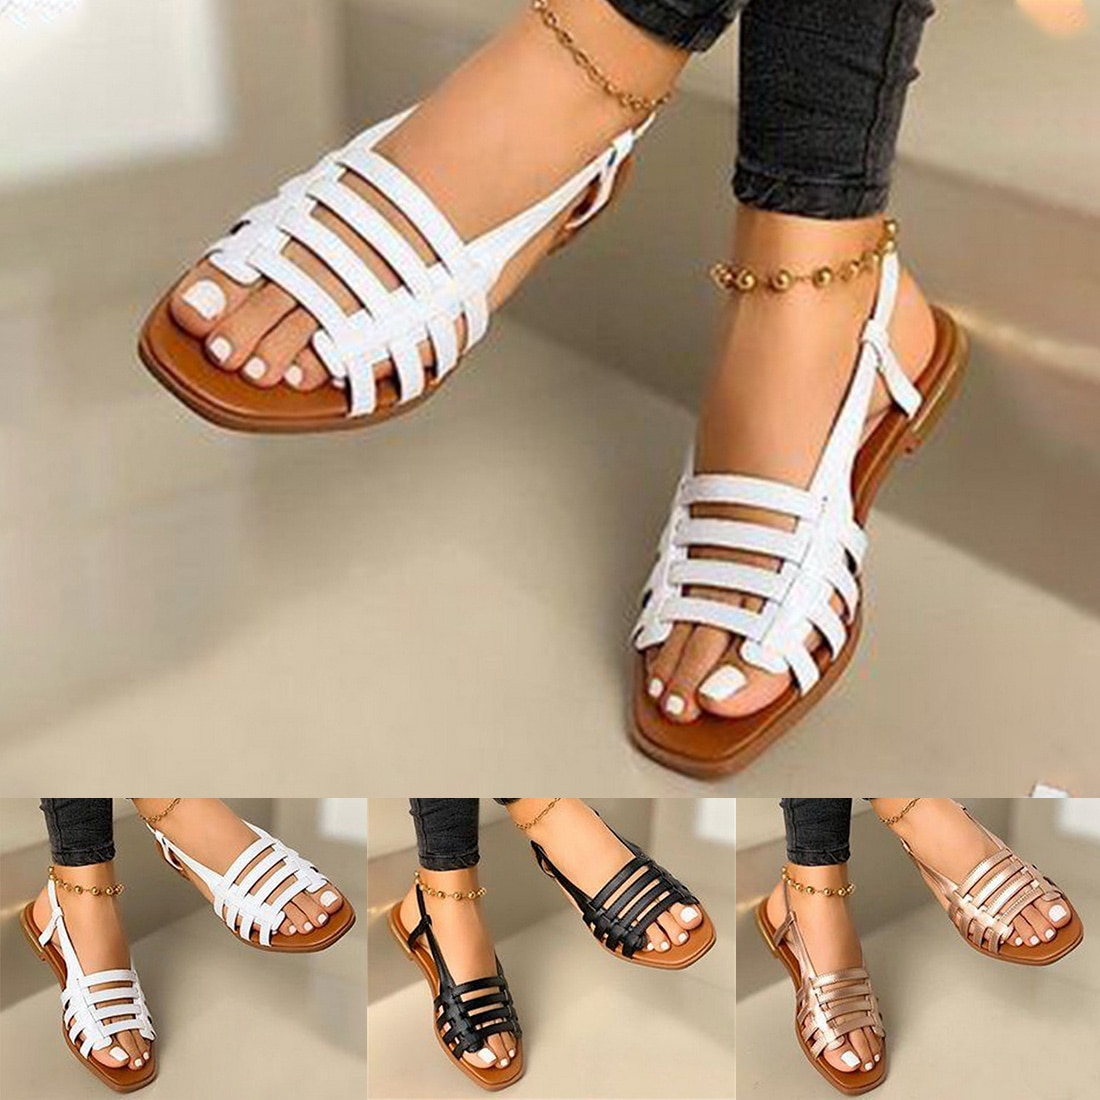 Flat Sandals Ladies Summer Outdoor Fashion Leather Shoes Round Toe Elegent Slipper Adjustable Buckle Strap Casual